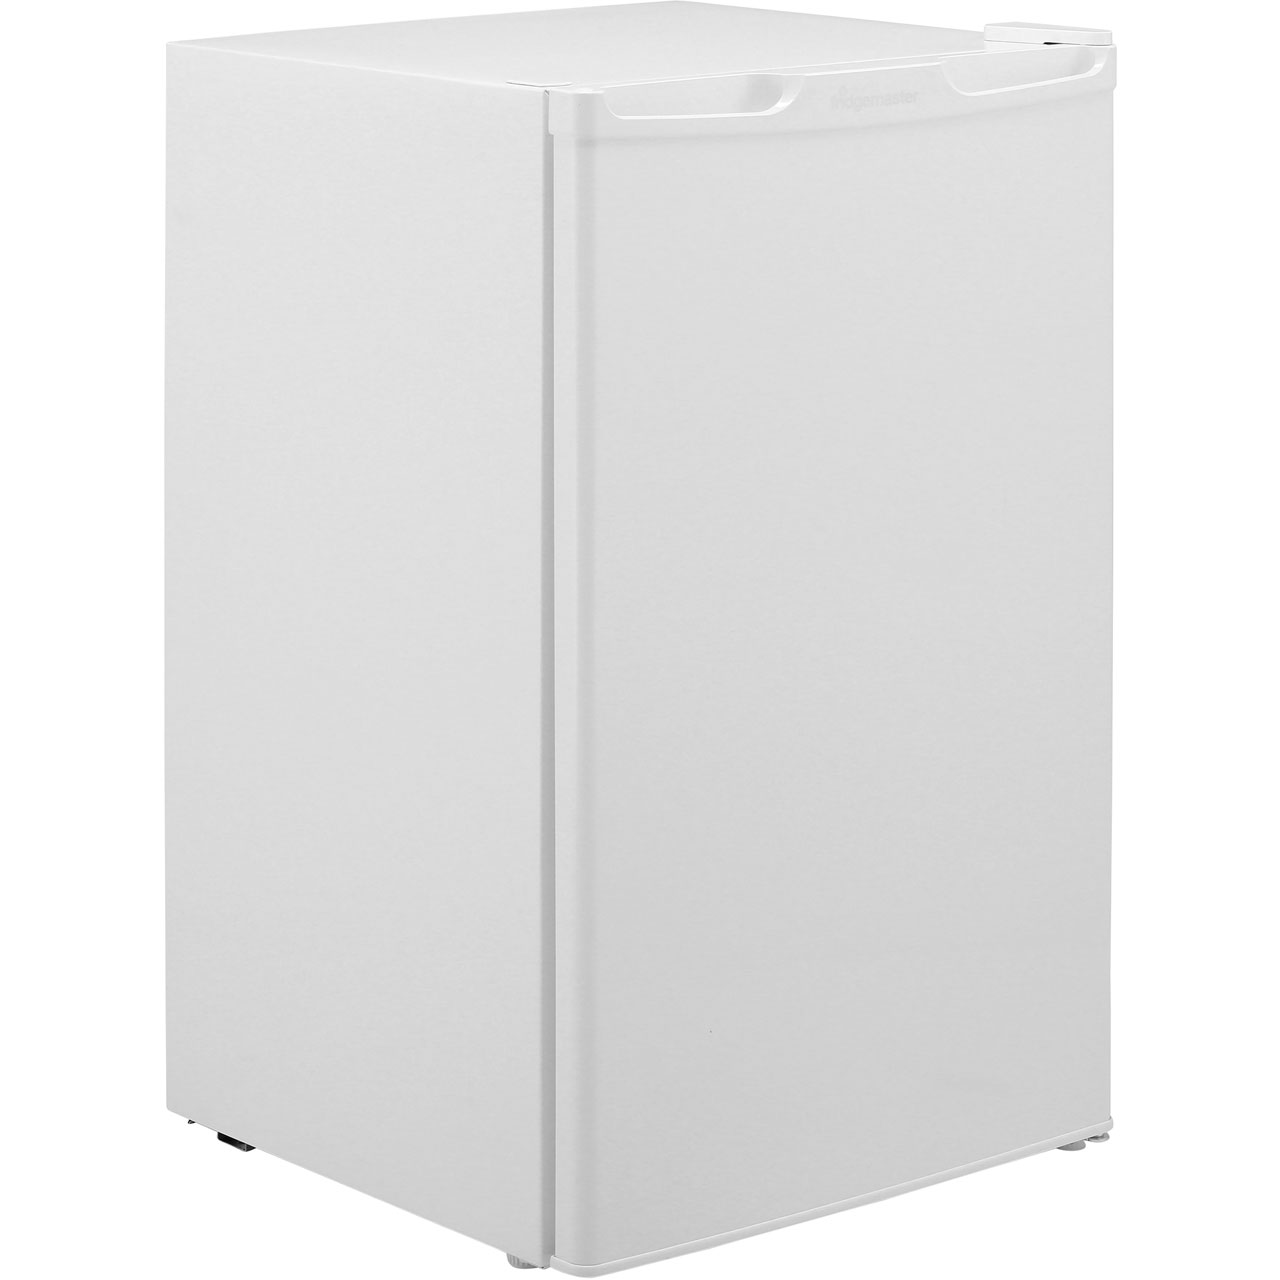 Fridgemaster MUL49102 Free Standing Larder Fridge in White